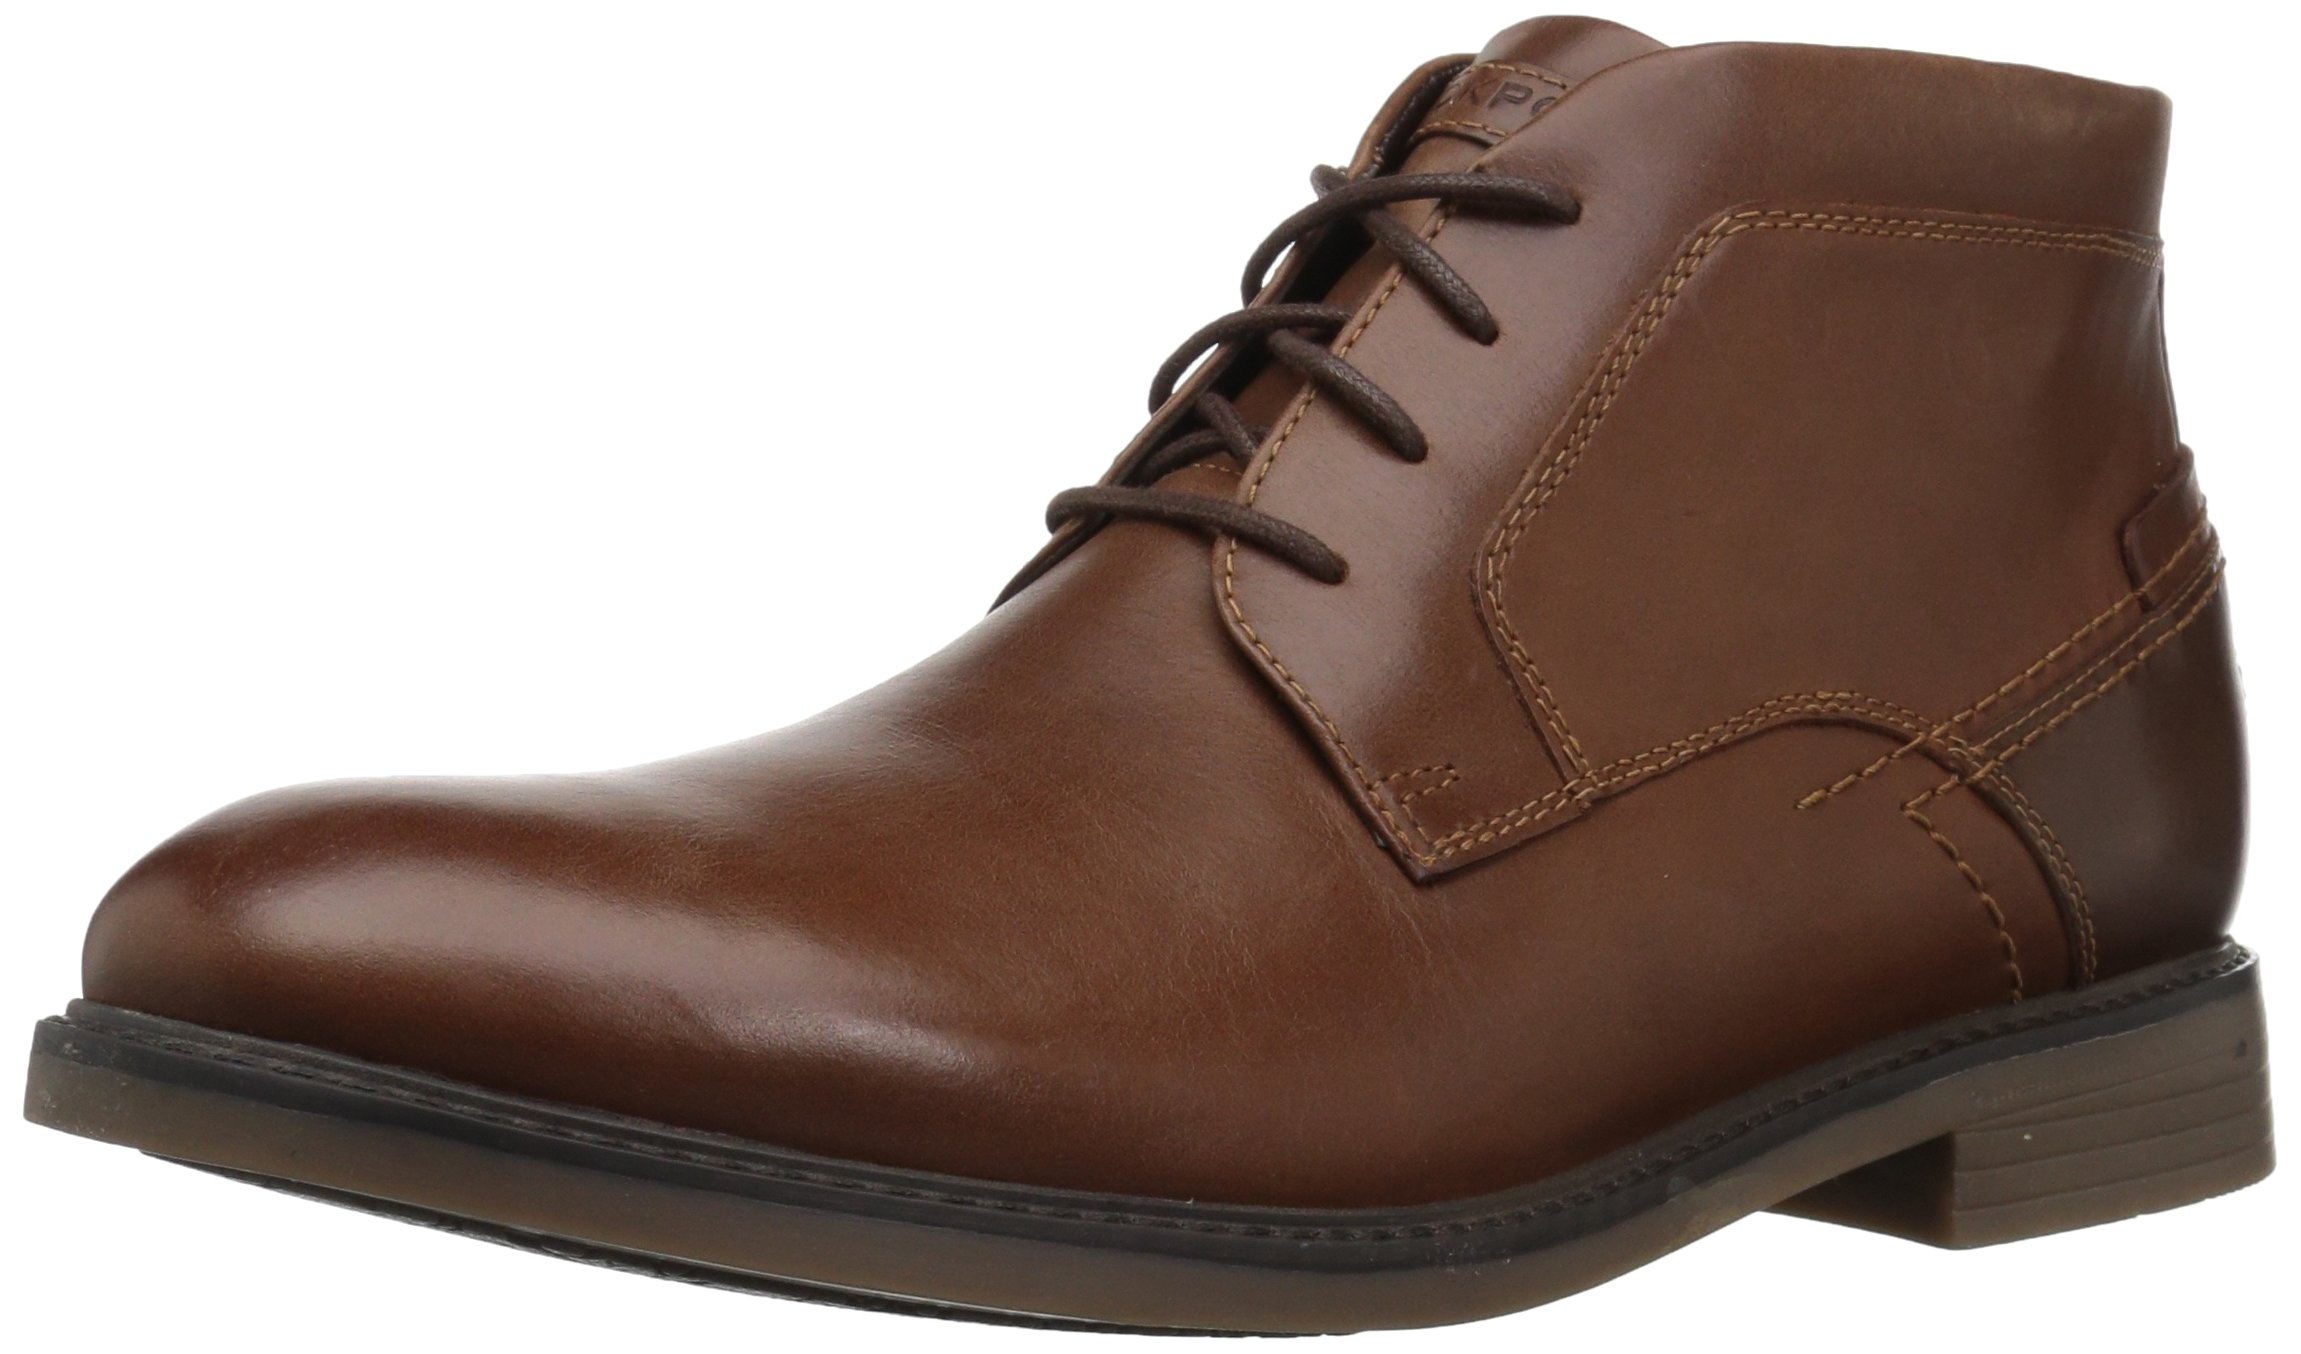 Rockport Men's Collyns Low Boot Chukka Boot, Cognac, 11 M US by Rockport